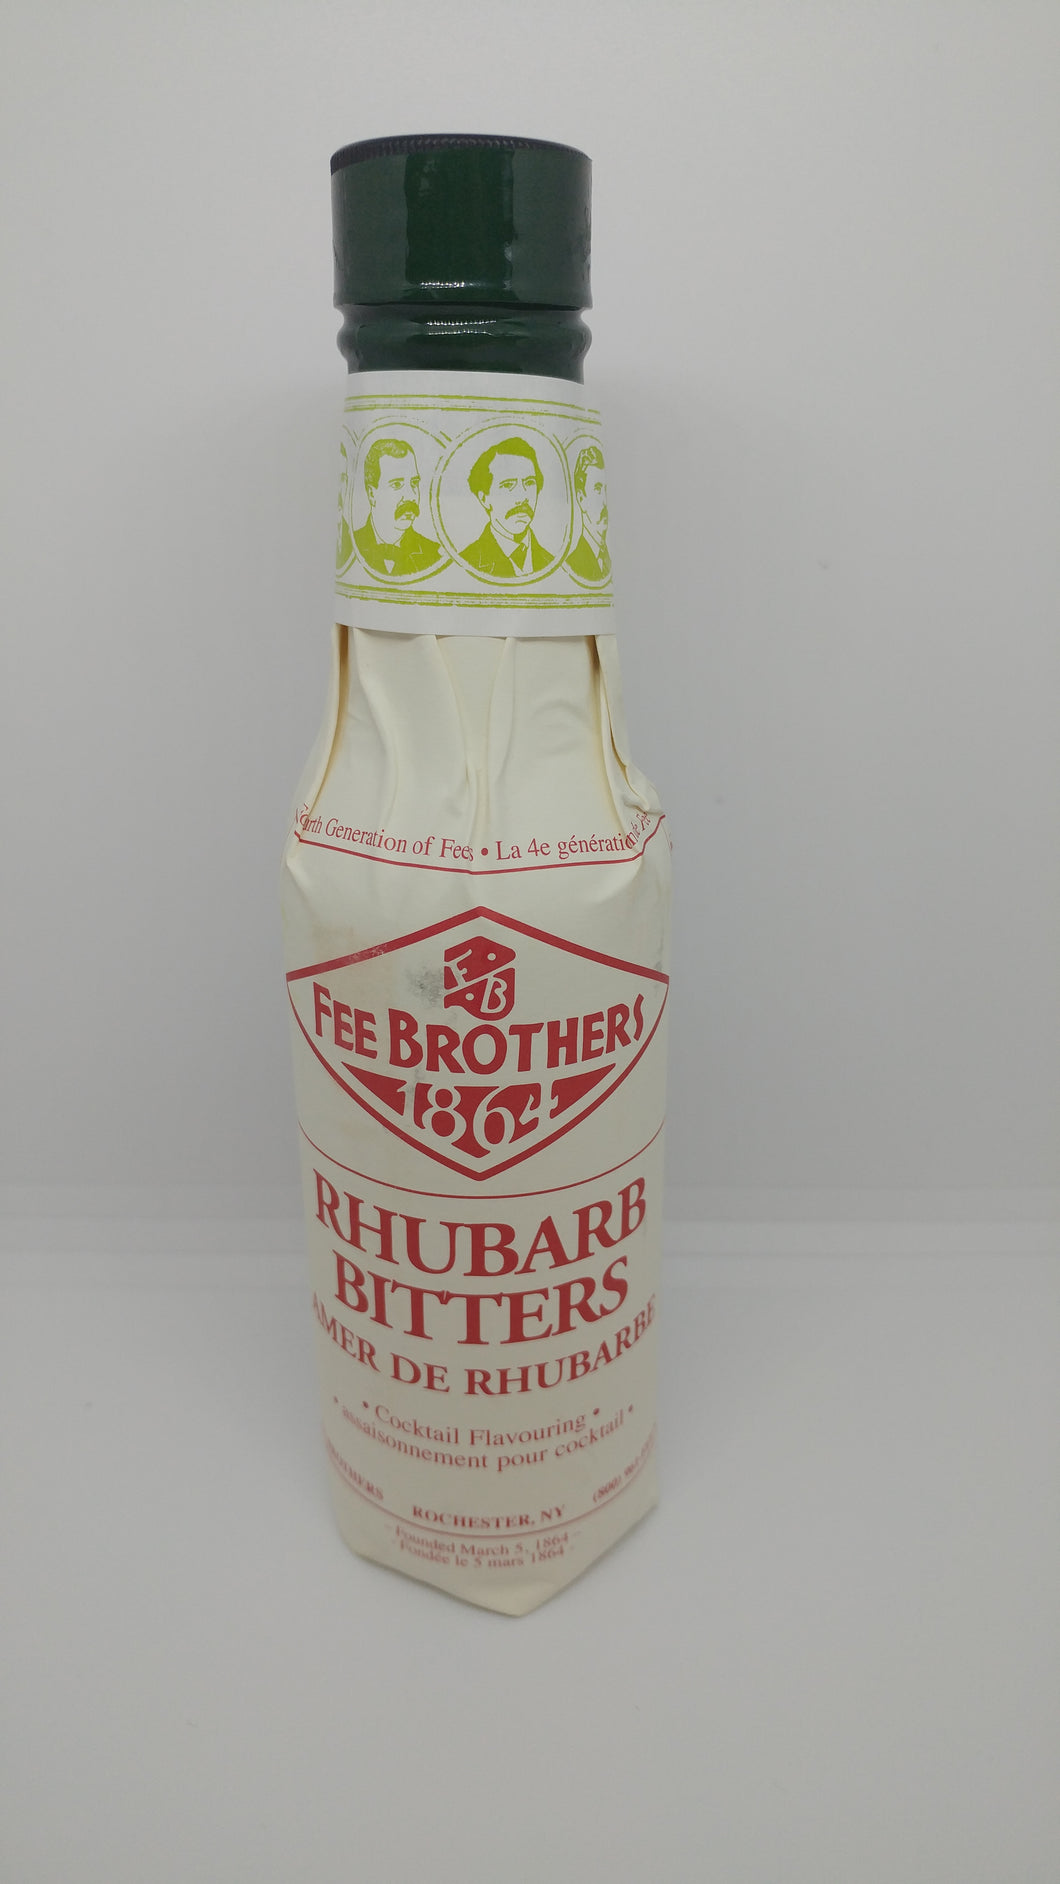 Fee Brothers Rhubarb Bitters 150mL